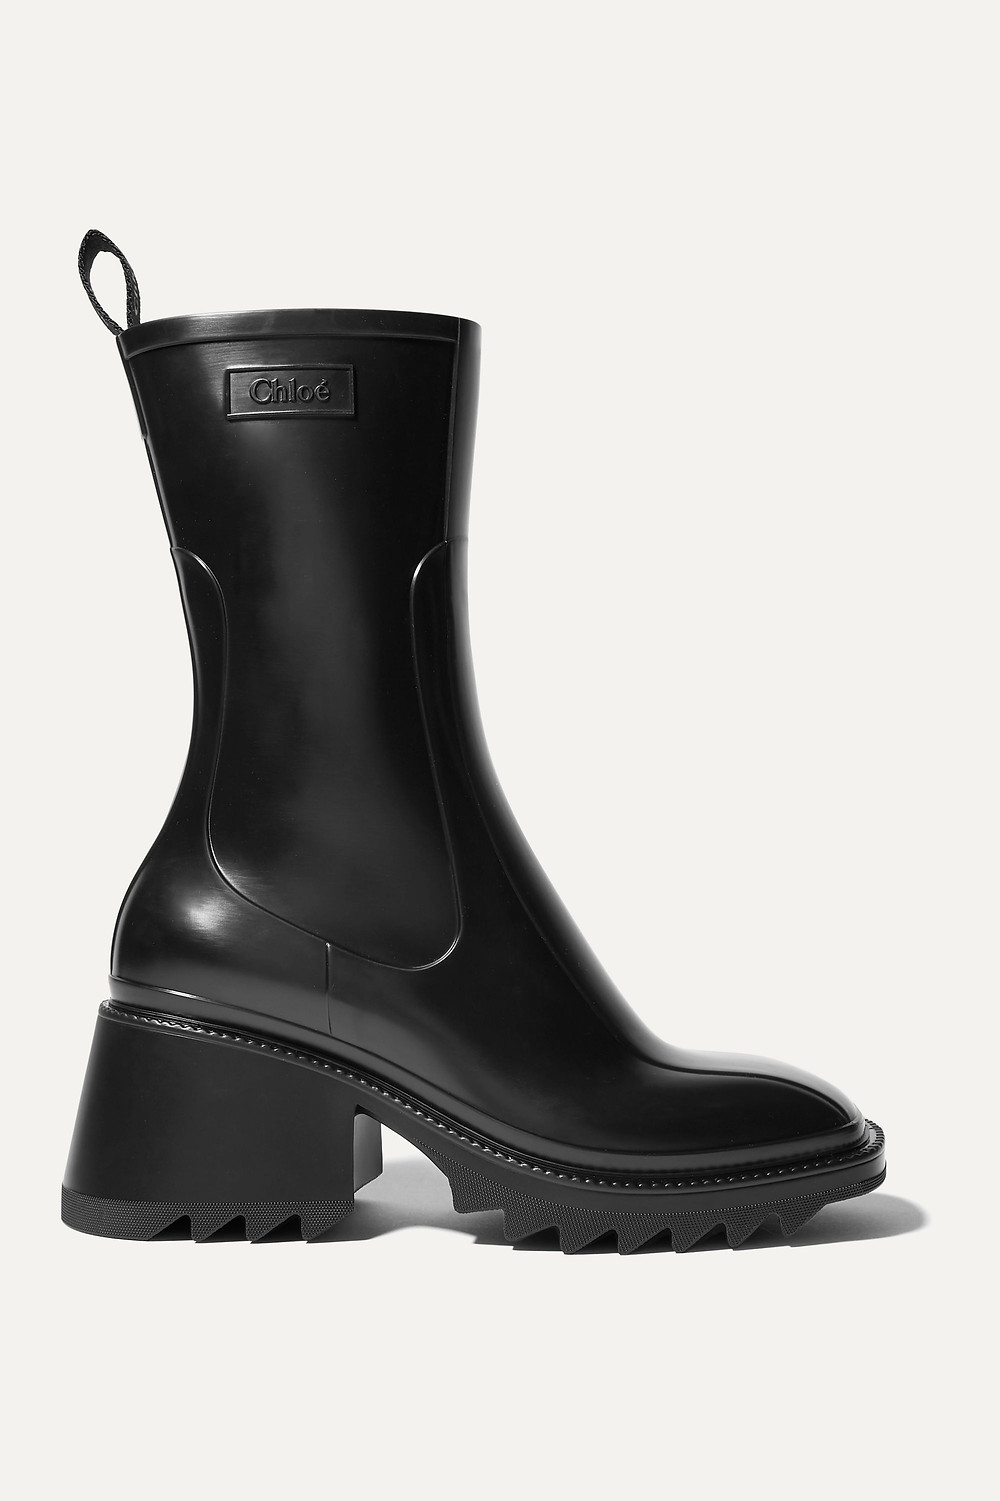 Chloé Betty rubber boots image via NET-A-PORTER